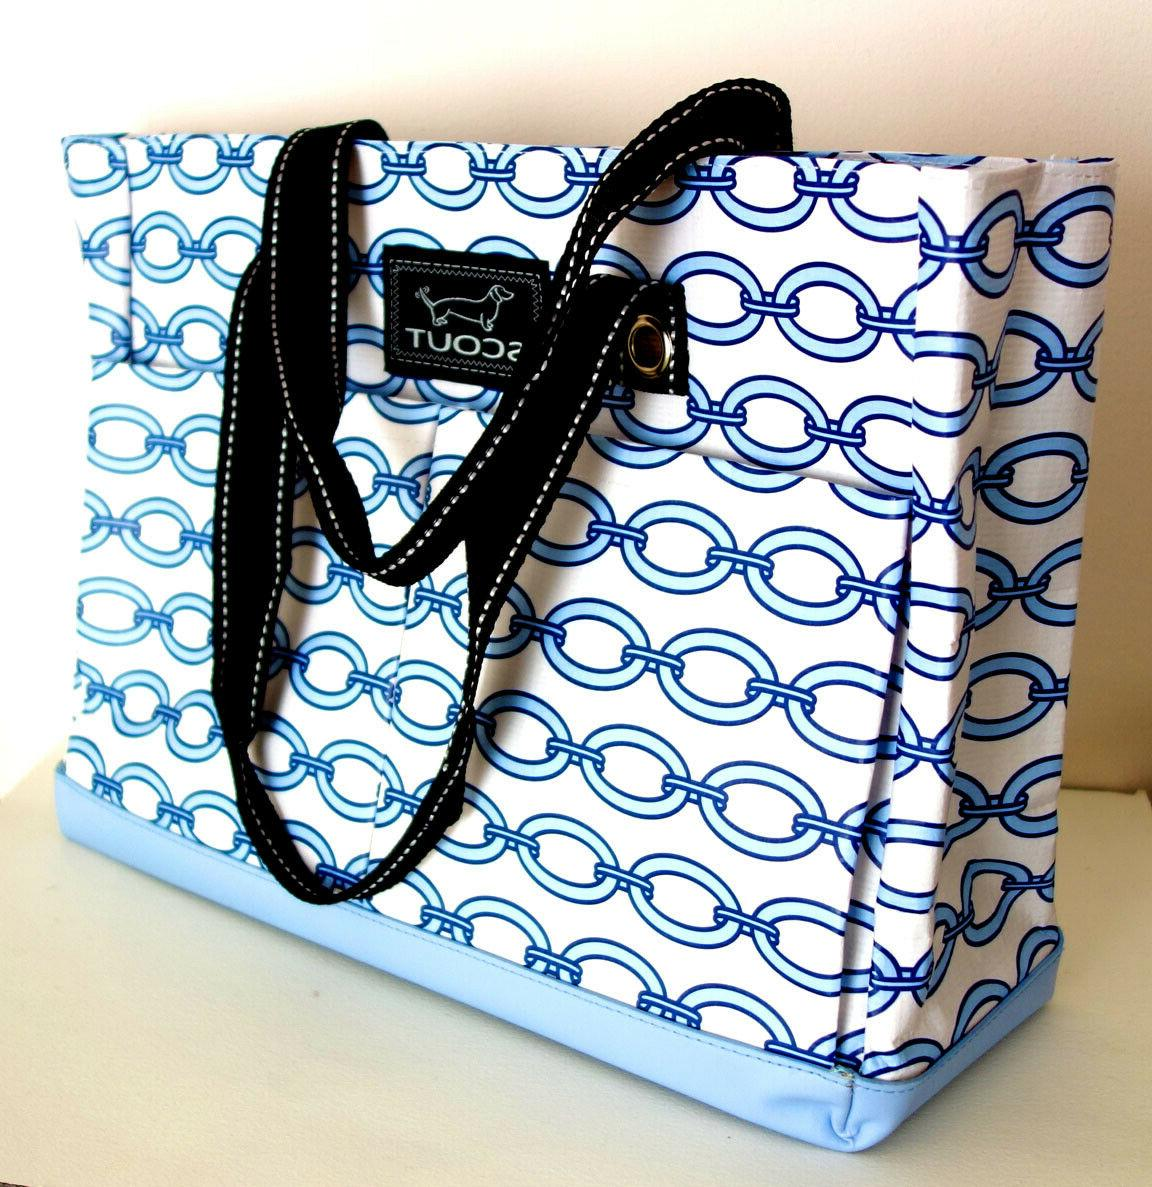 Scout Girl Chain Tote